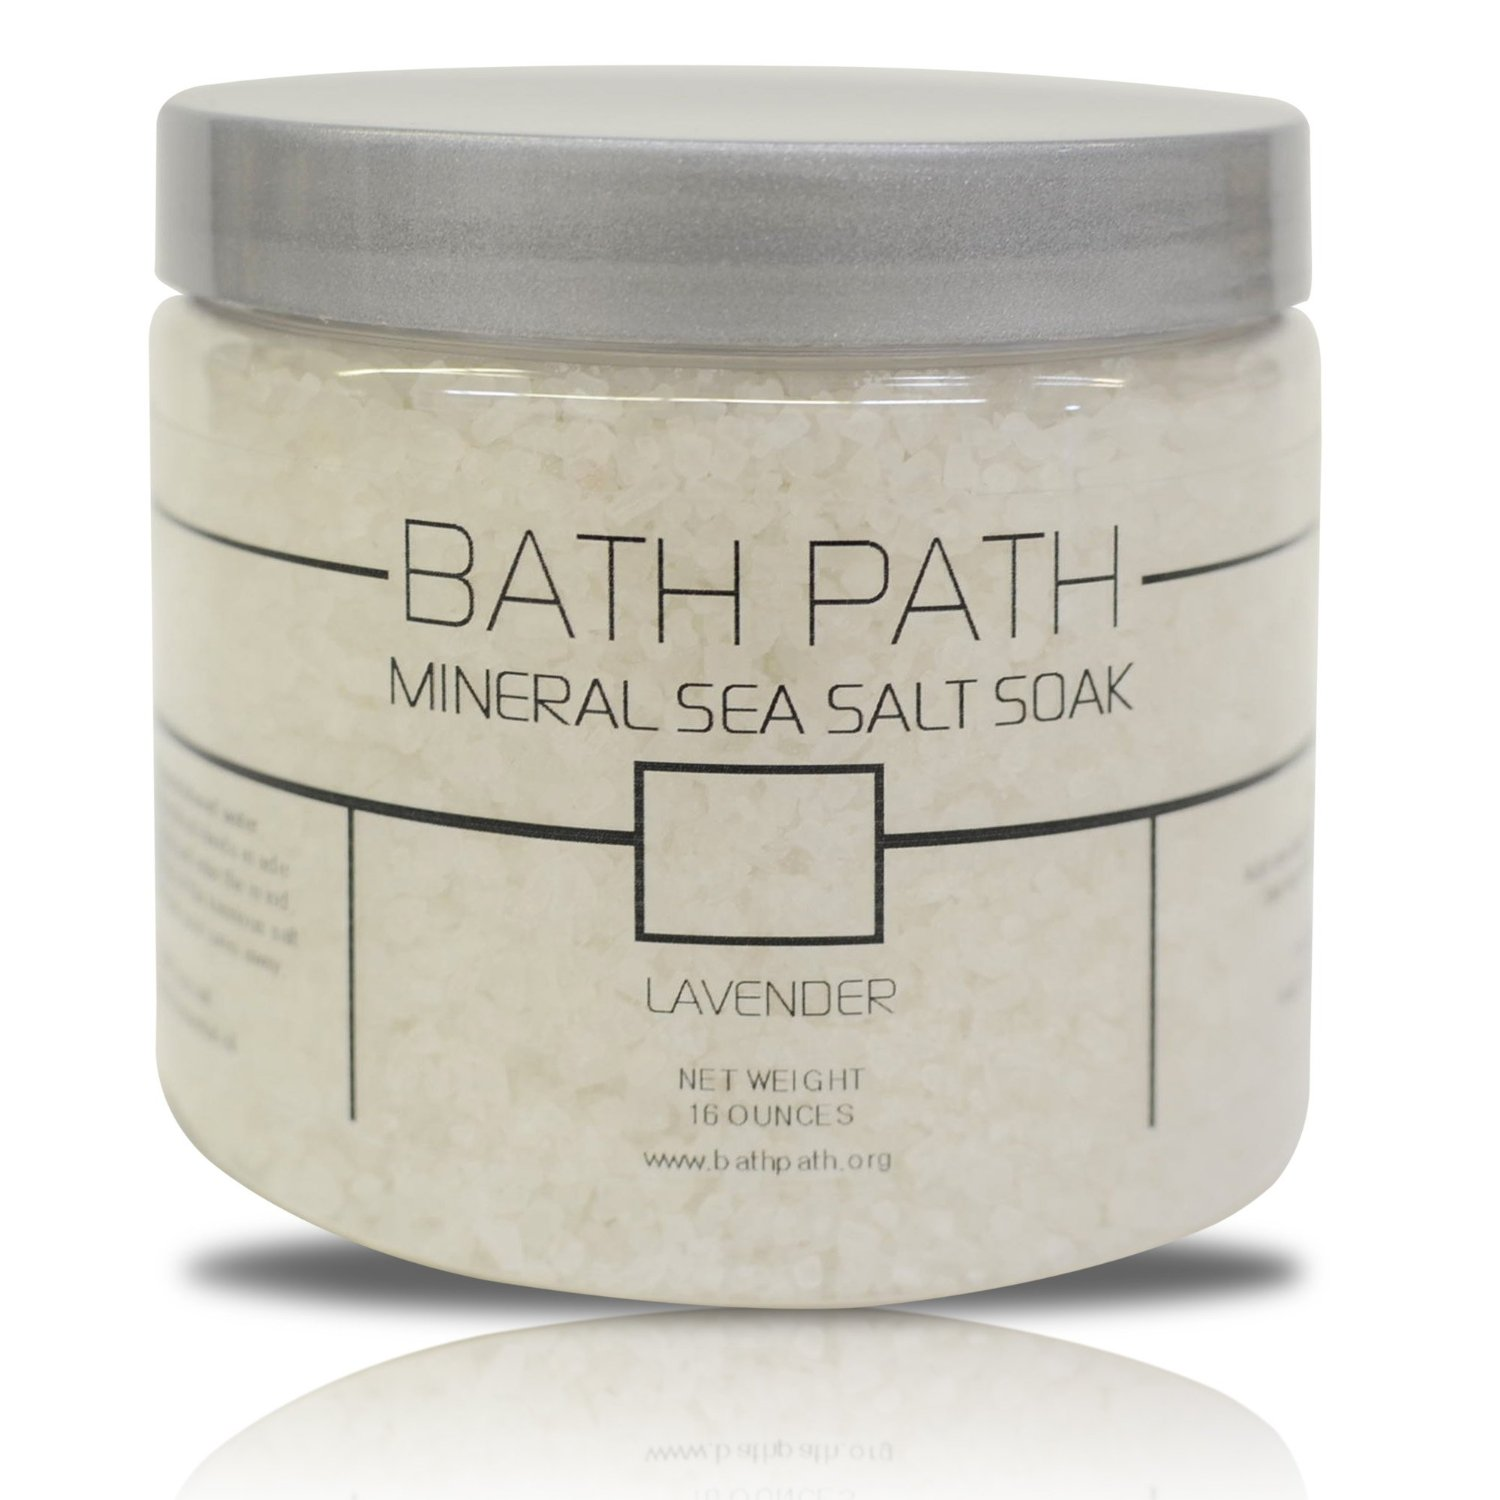 Bathpath Lavender Sea Salt Bath